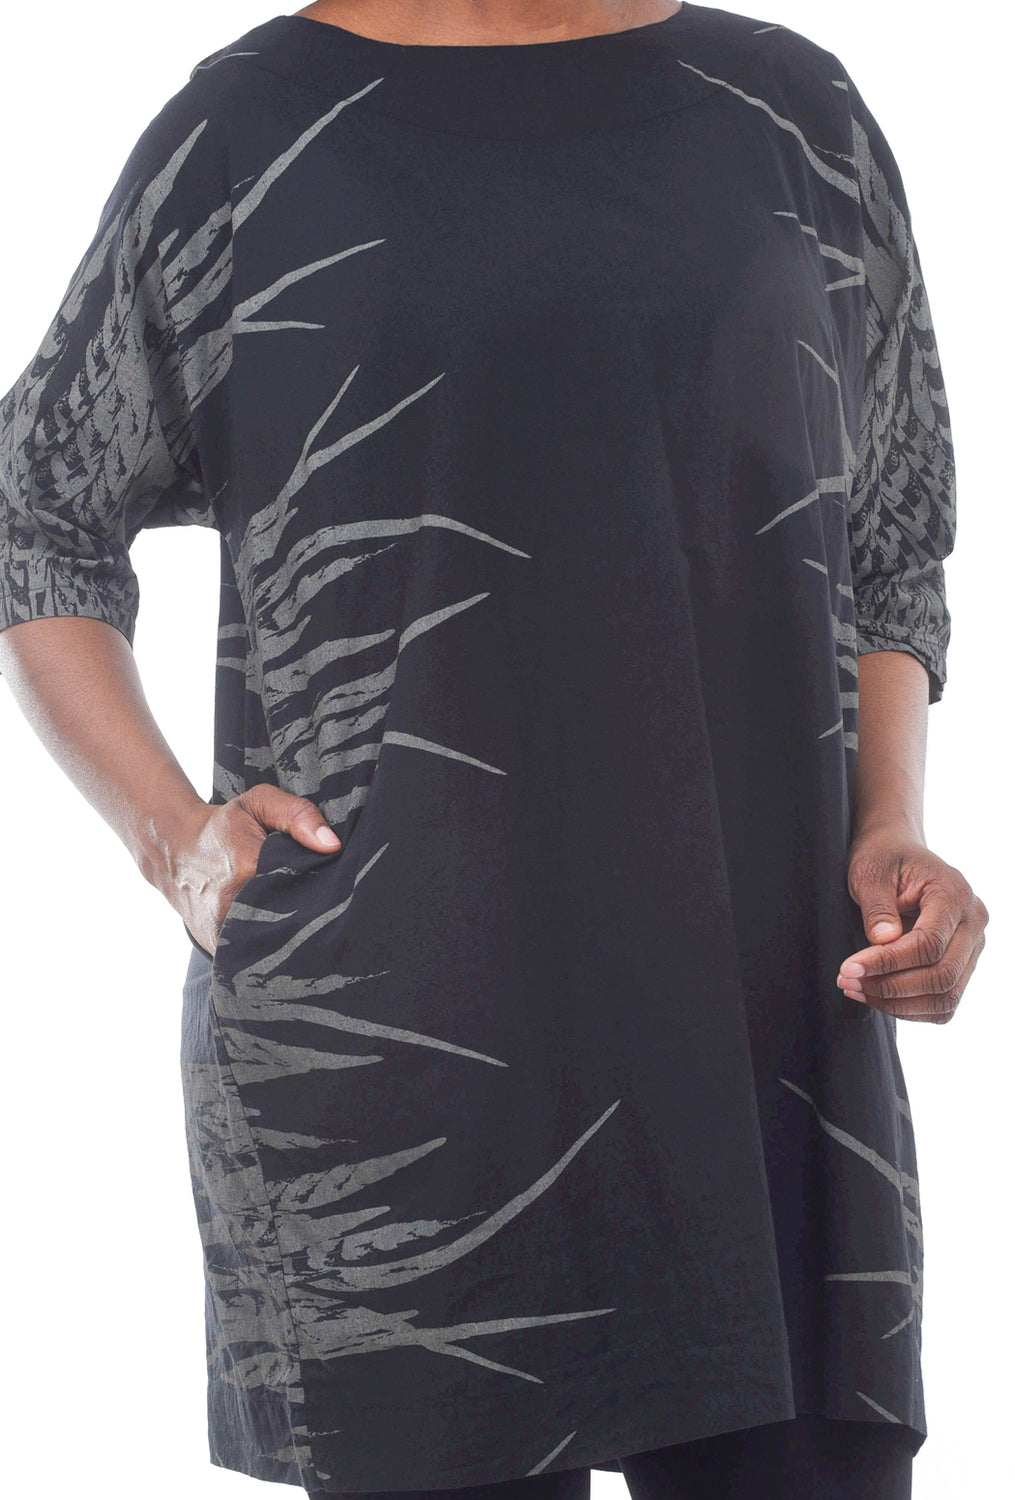 Uzi NYC Print Now Dress, Feather Black